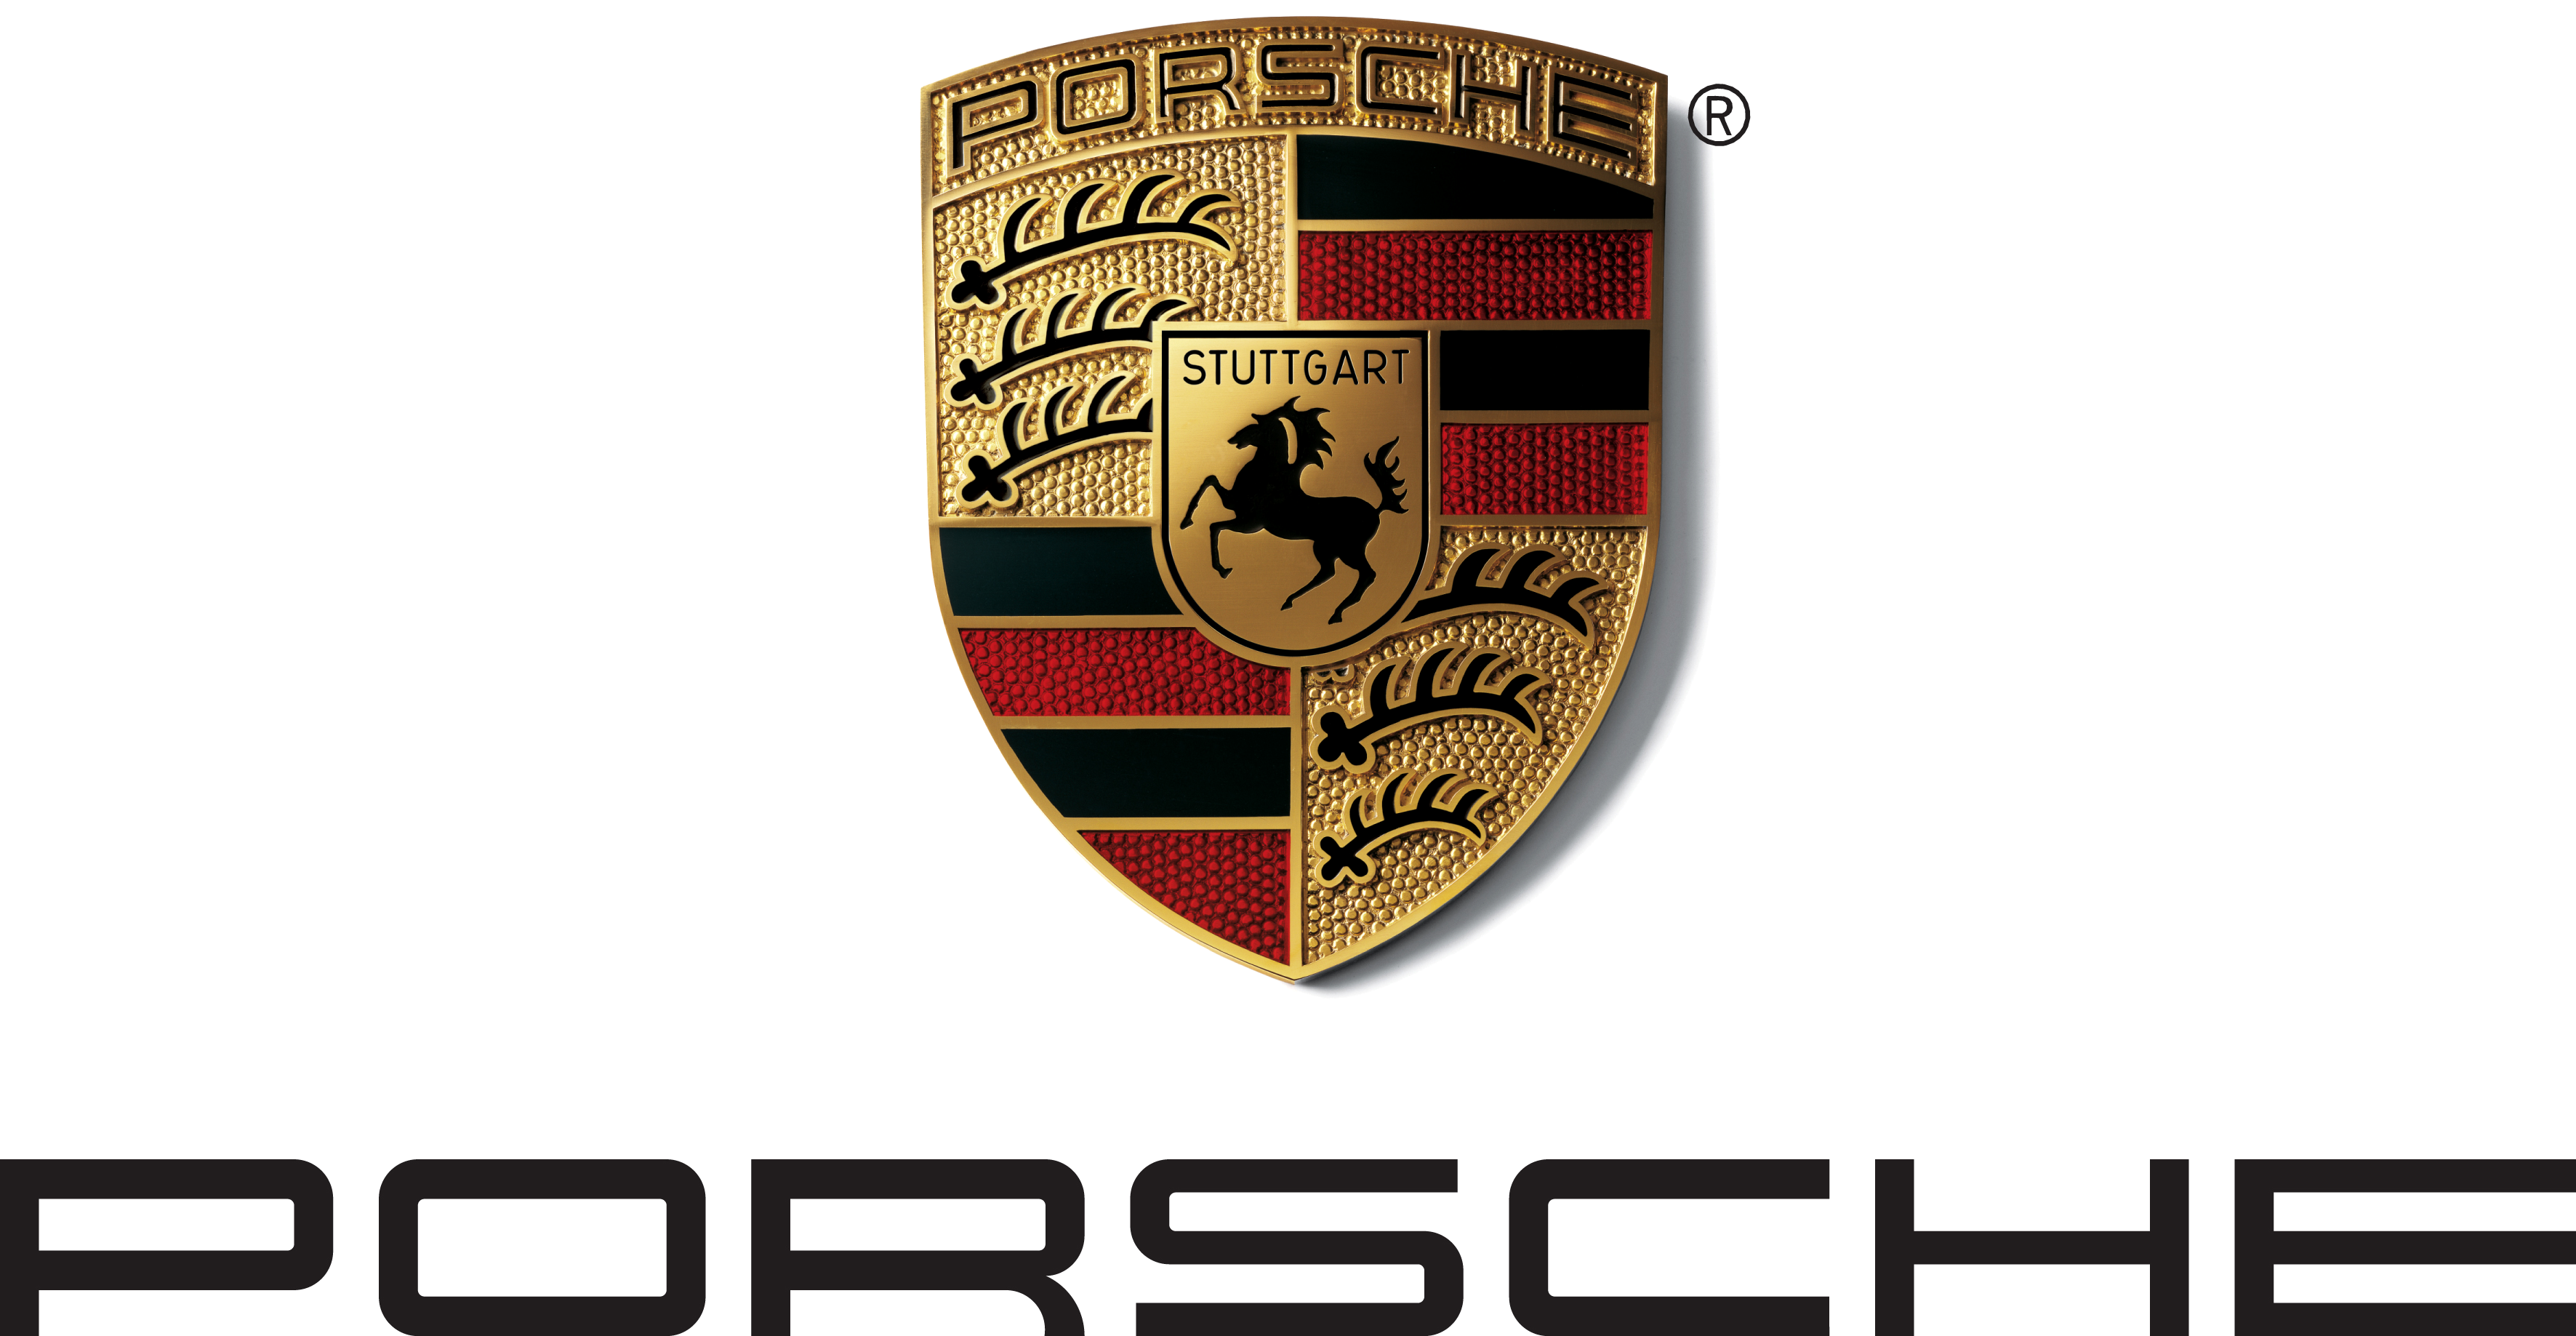 Porsche Emblem Carve Midnight Woodworking